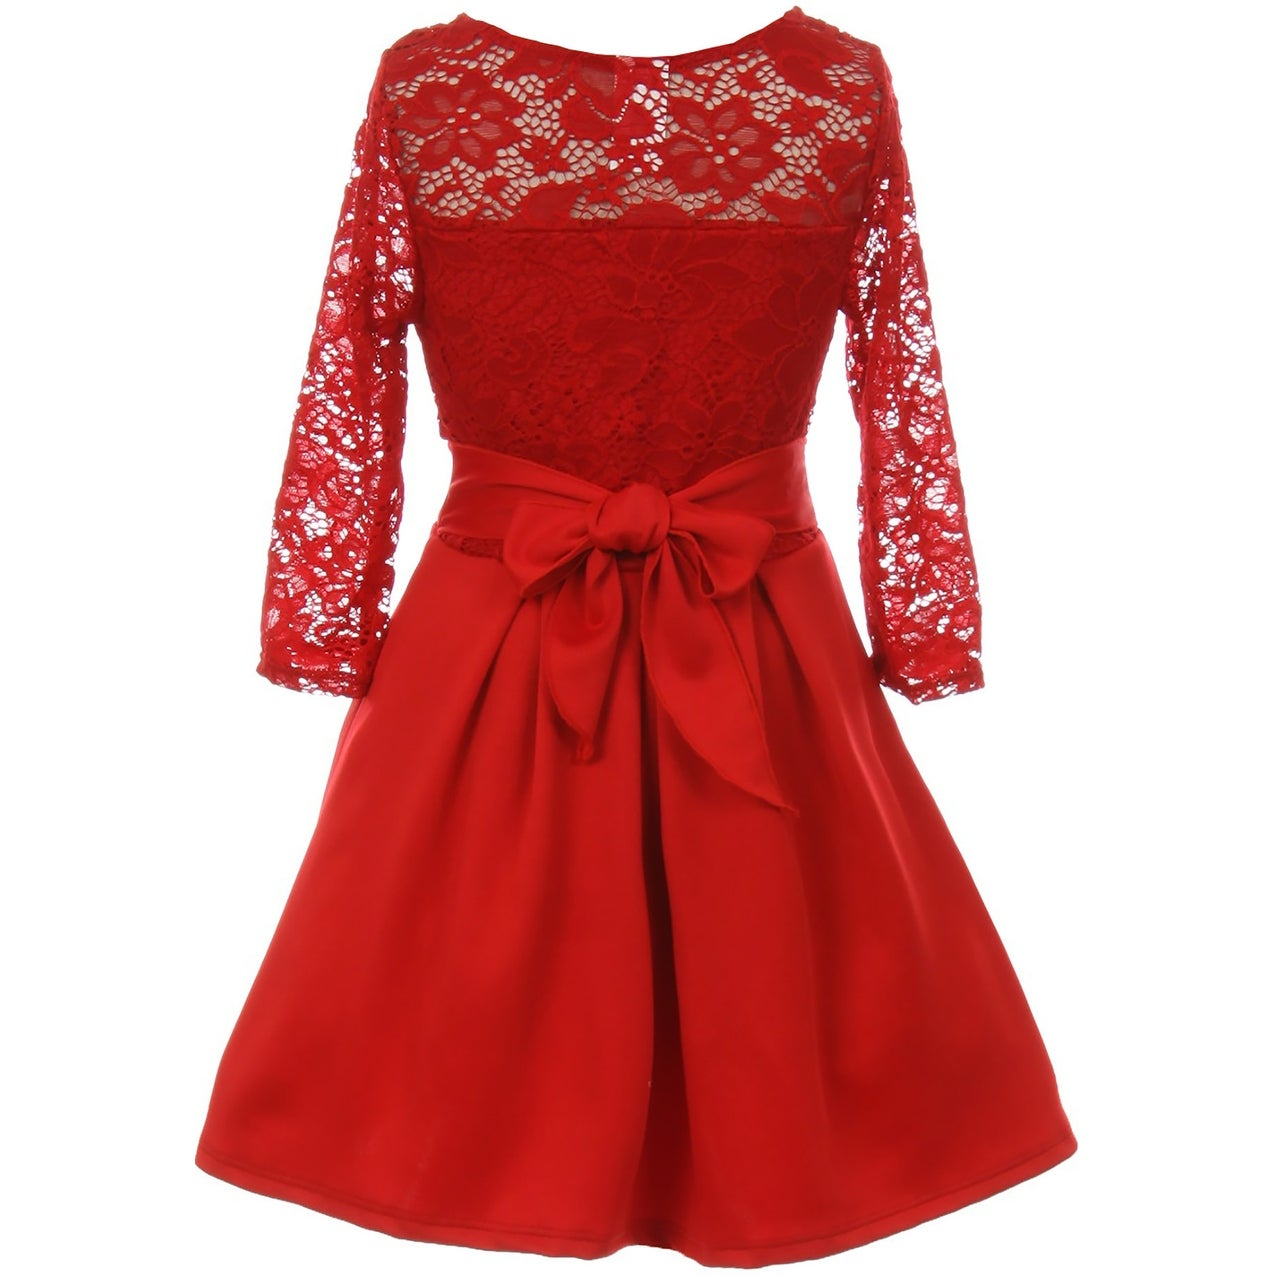 Shop Floral Lace Top Bow Flower Girl Dress USA Red JKS 2104 - Free ...